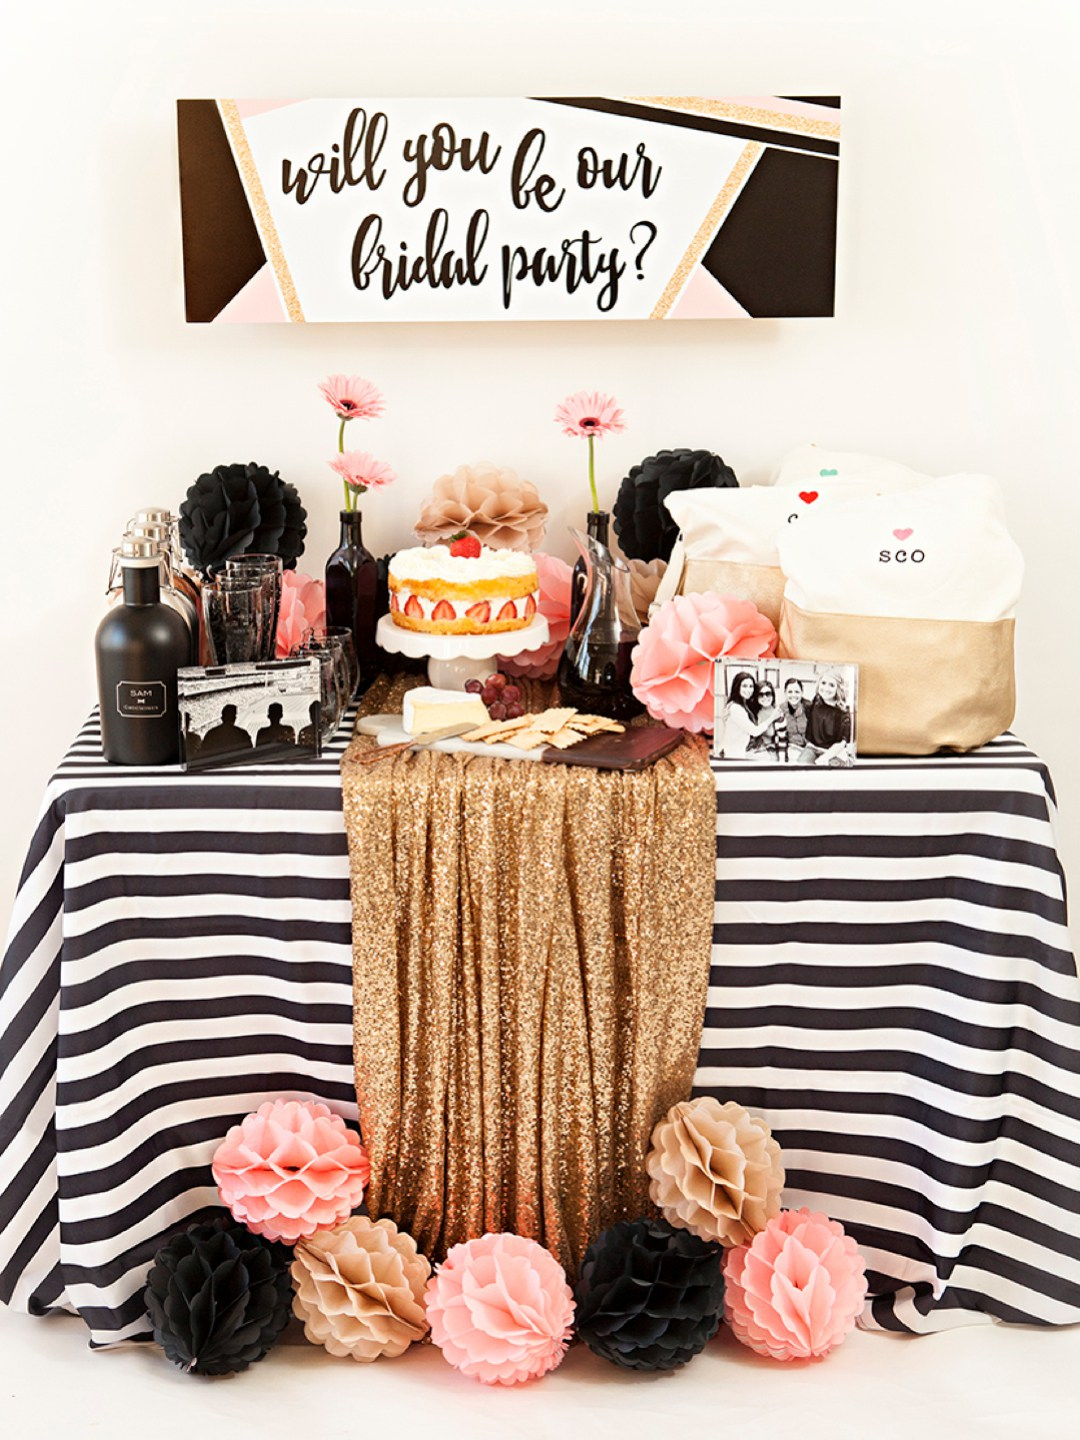 Another reason to celebrate! Throw a party to ask your bridal party.